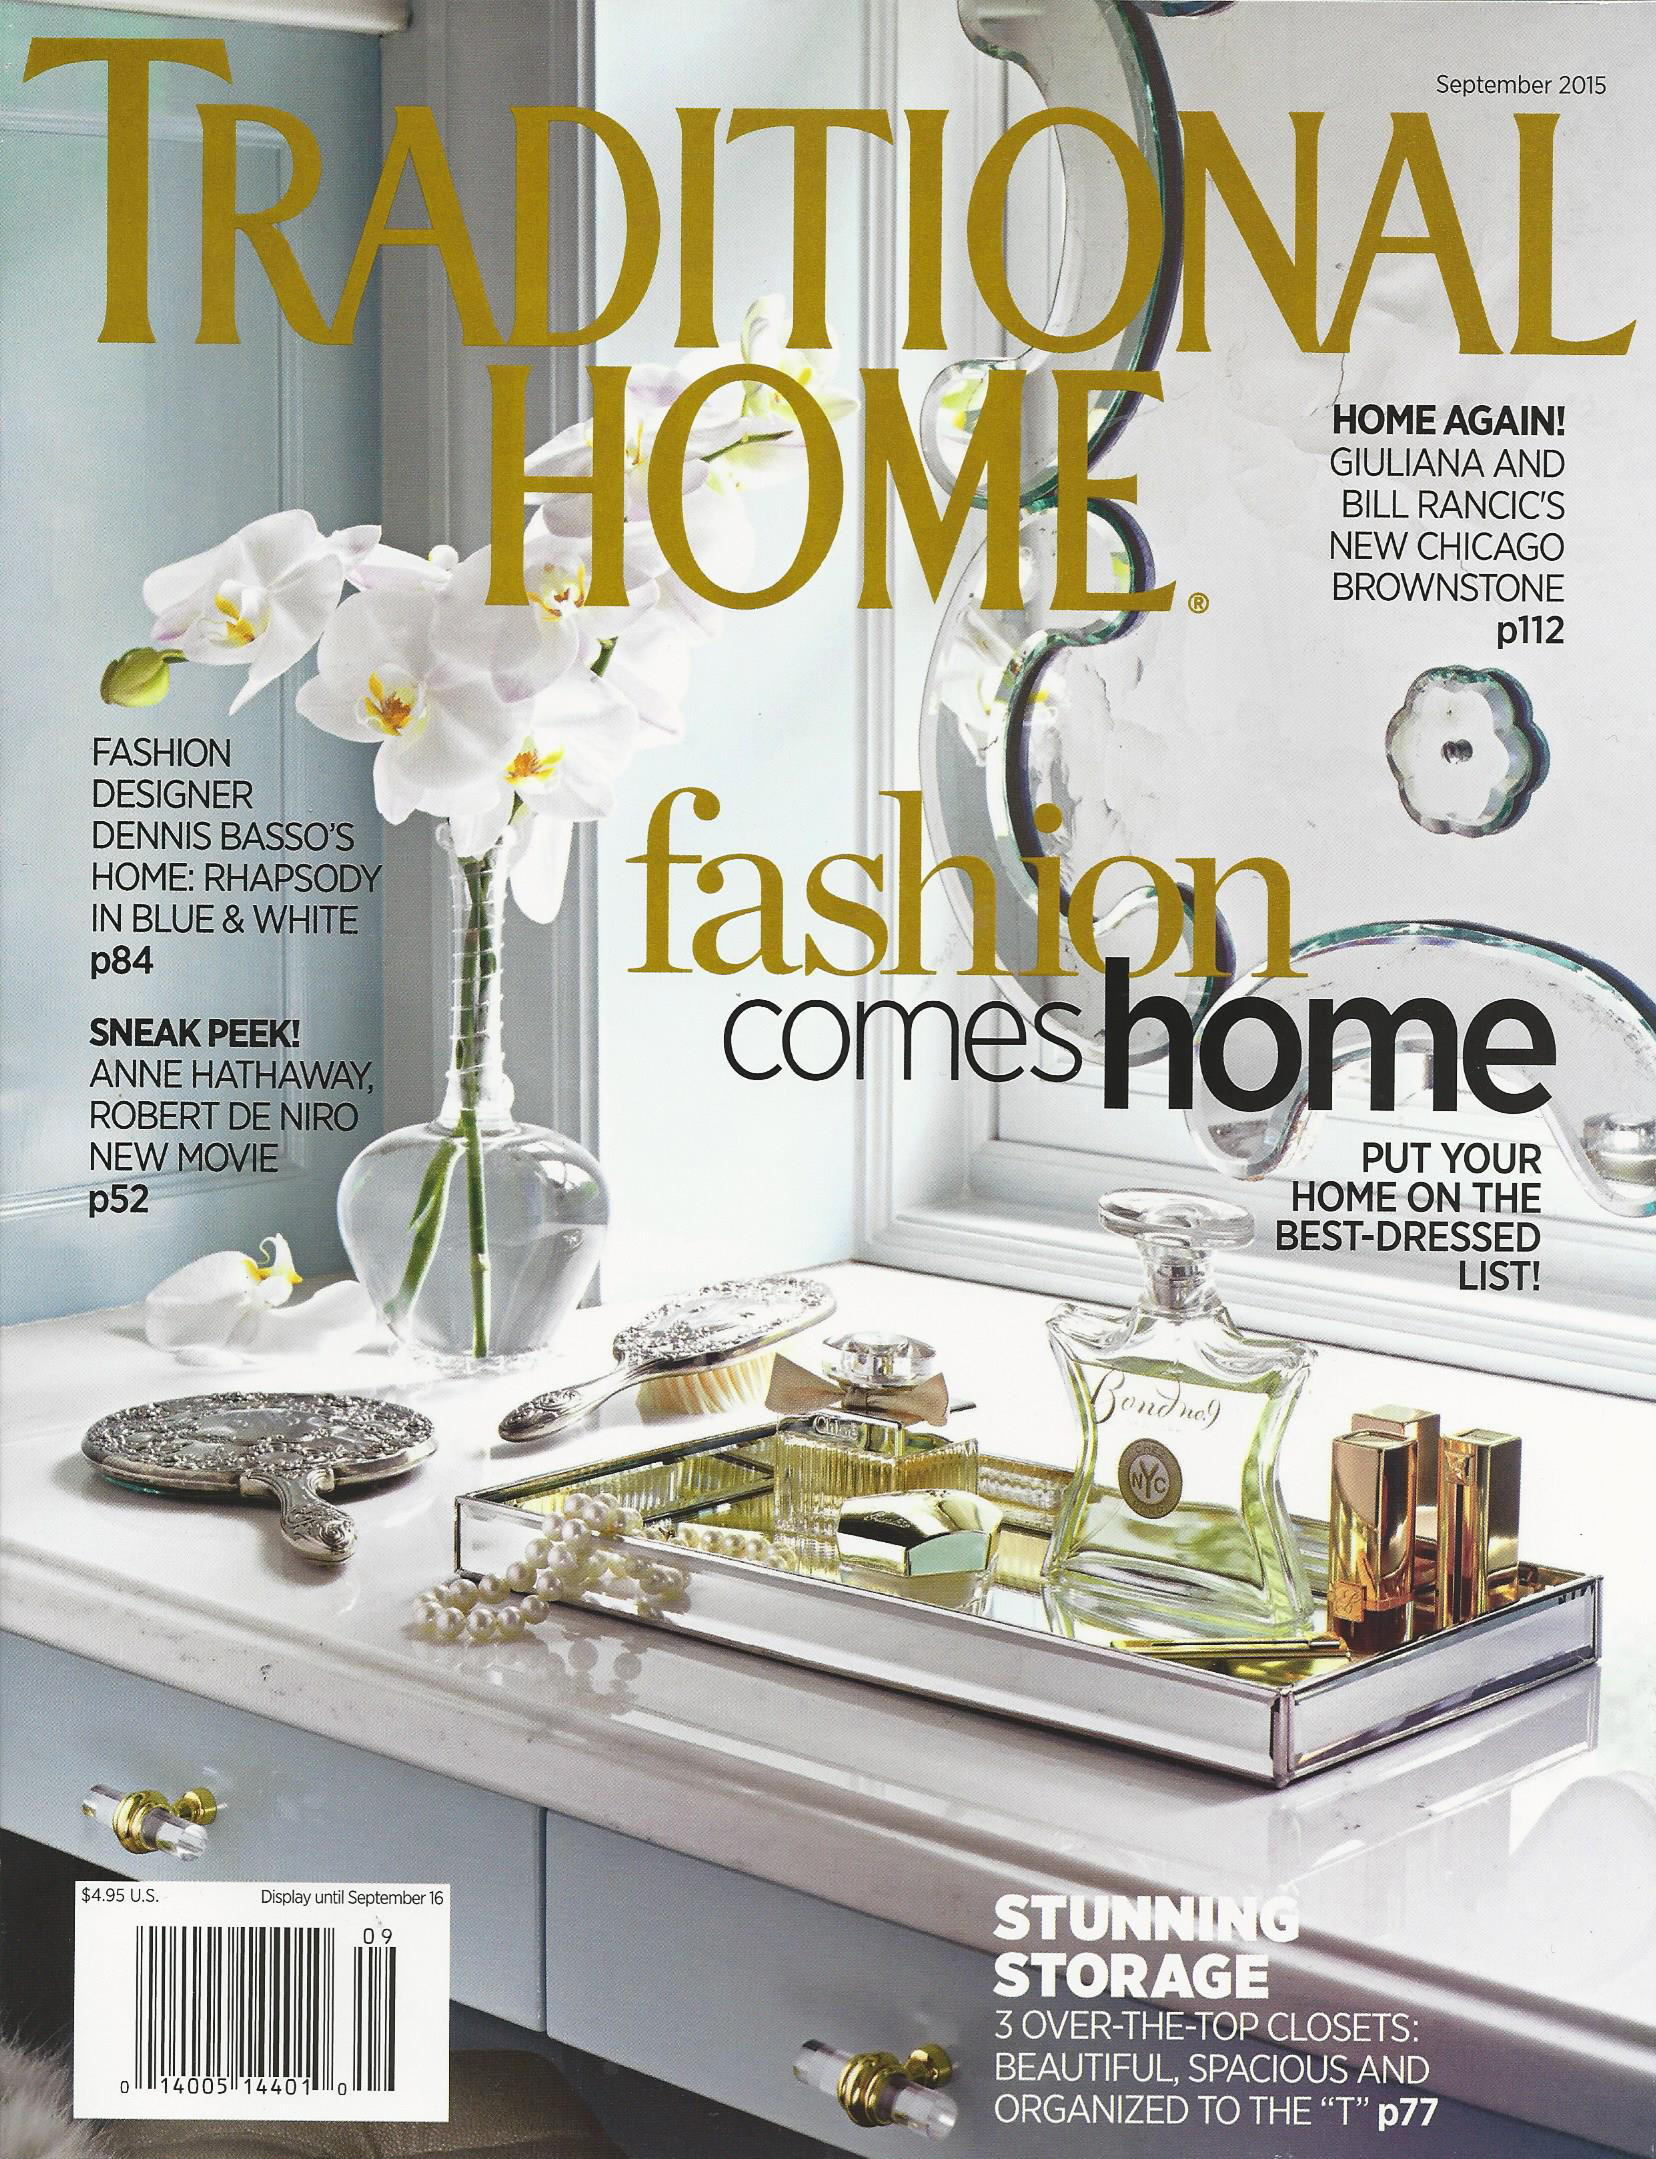 Traditional Home cover 2015